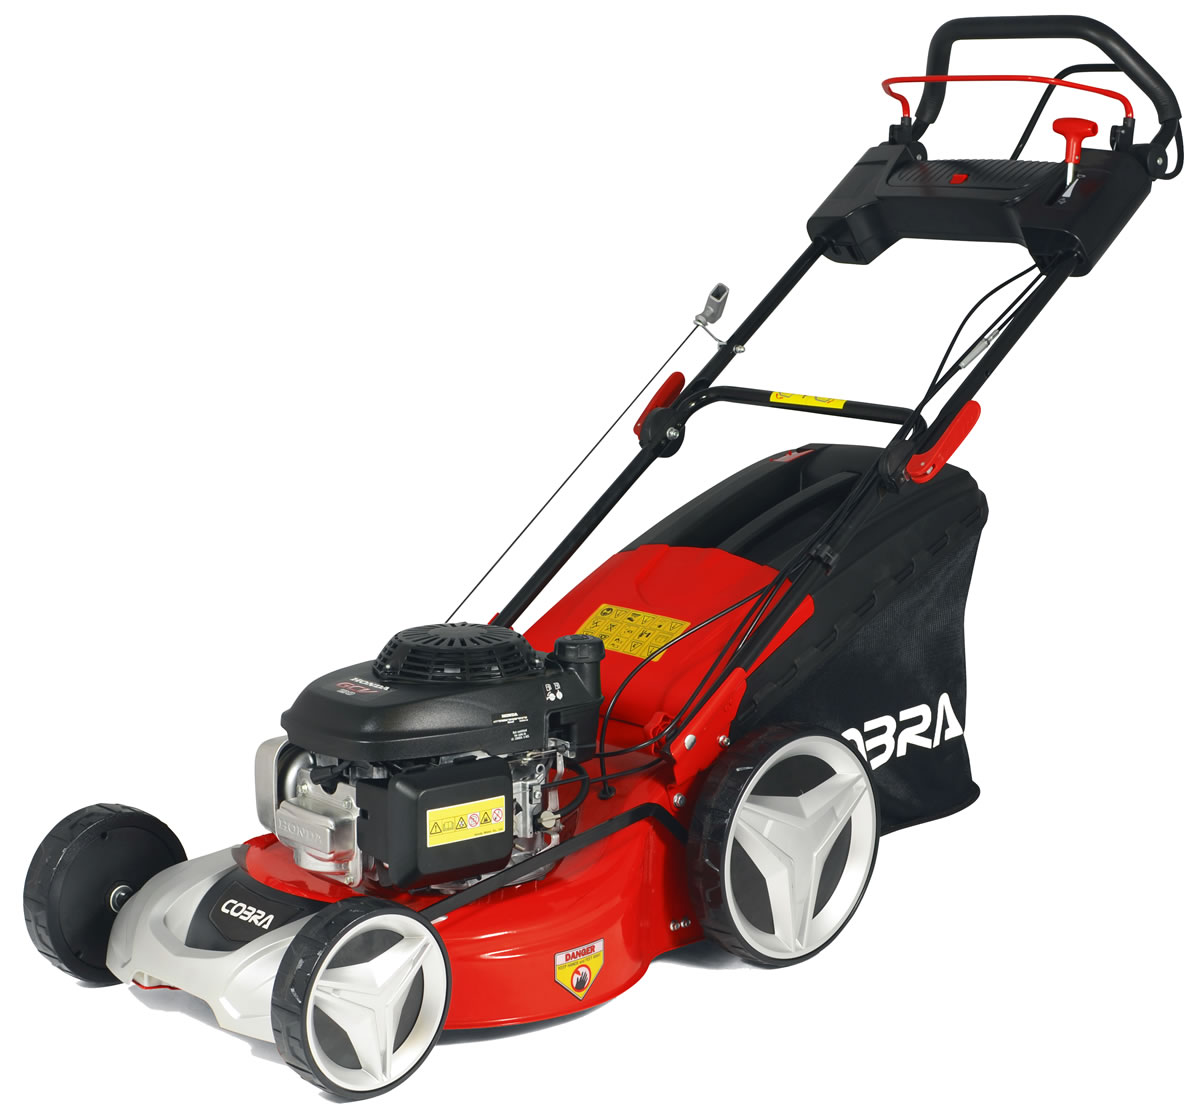 COBRA MX51SPH Petrol Lawn Mower